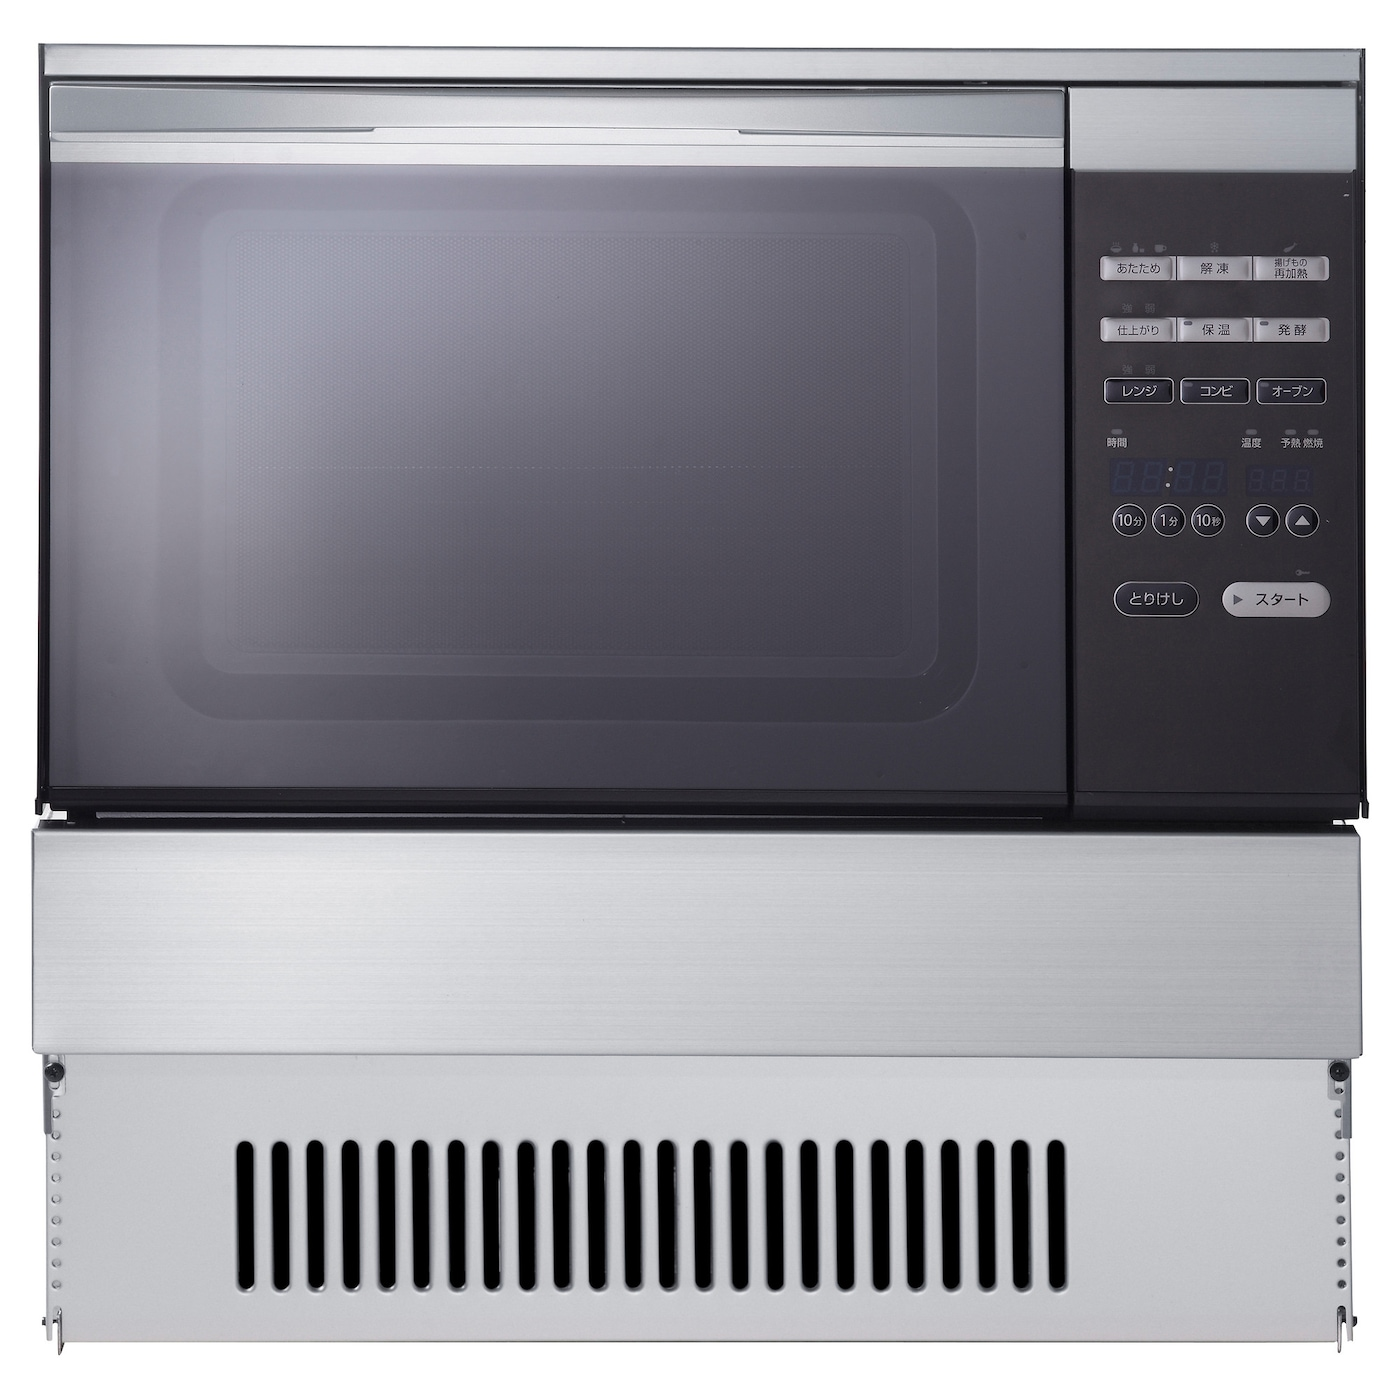 Mumsig Lp Gas Oven With Microwave